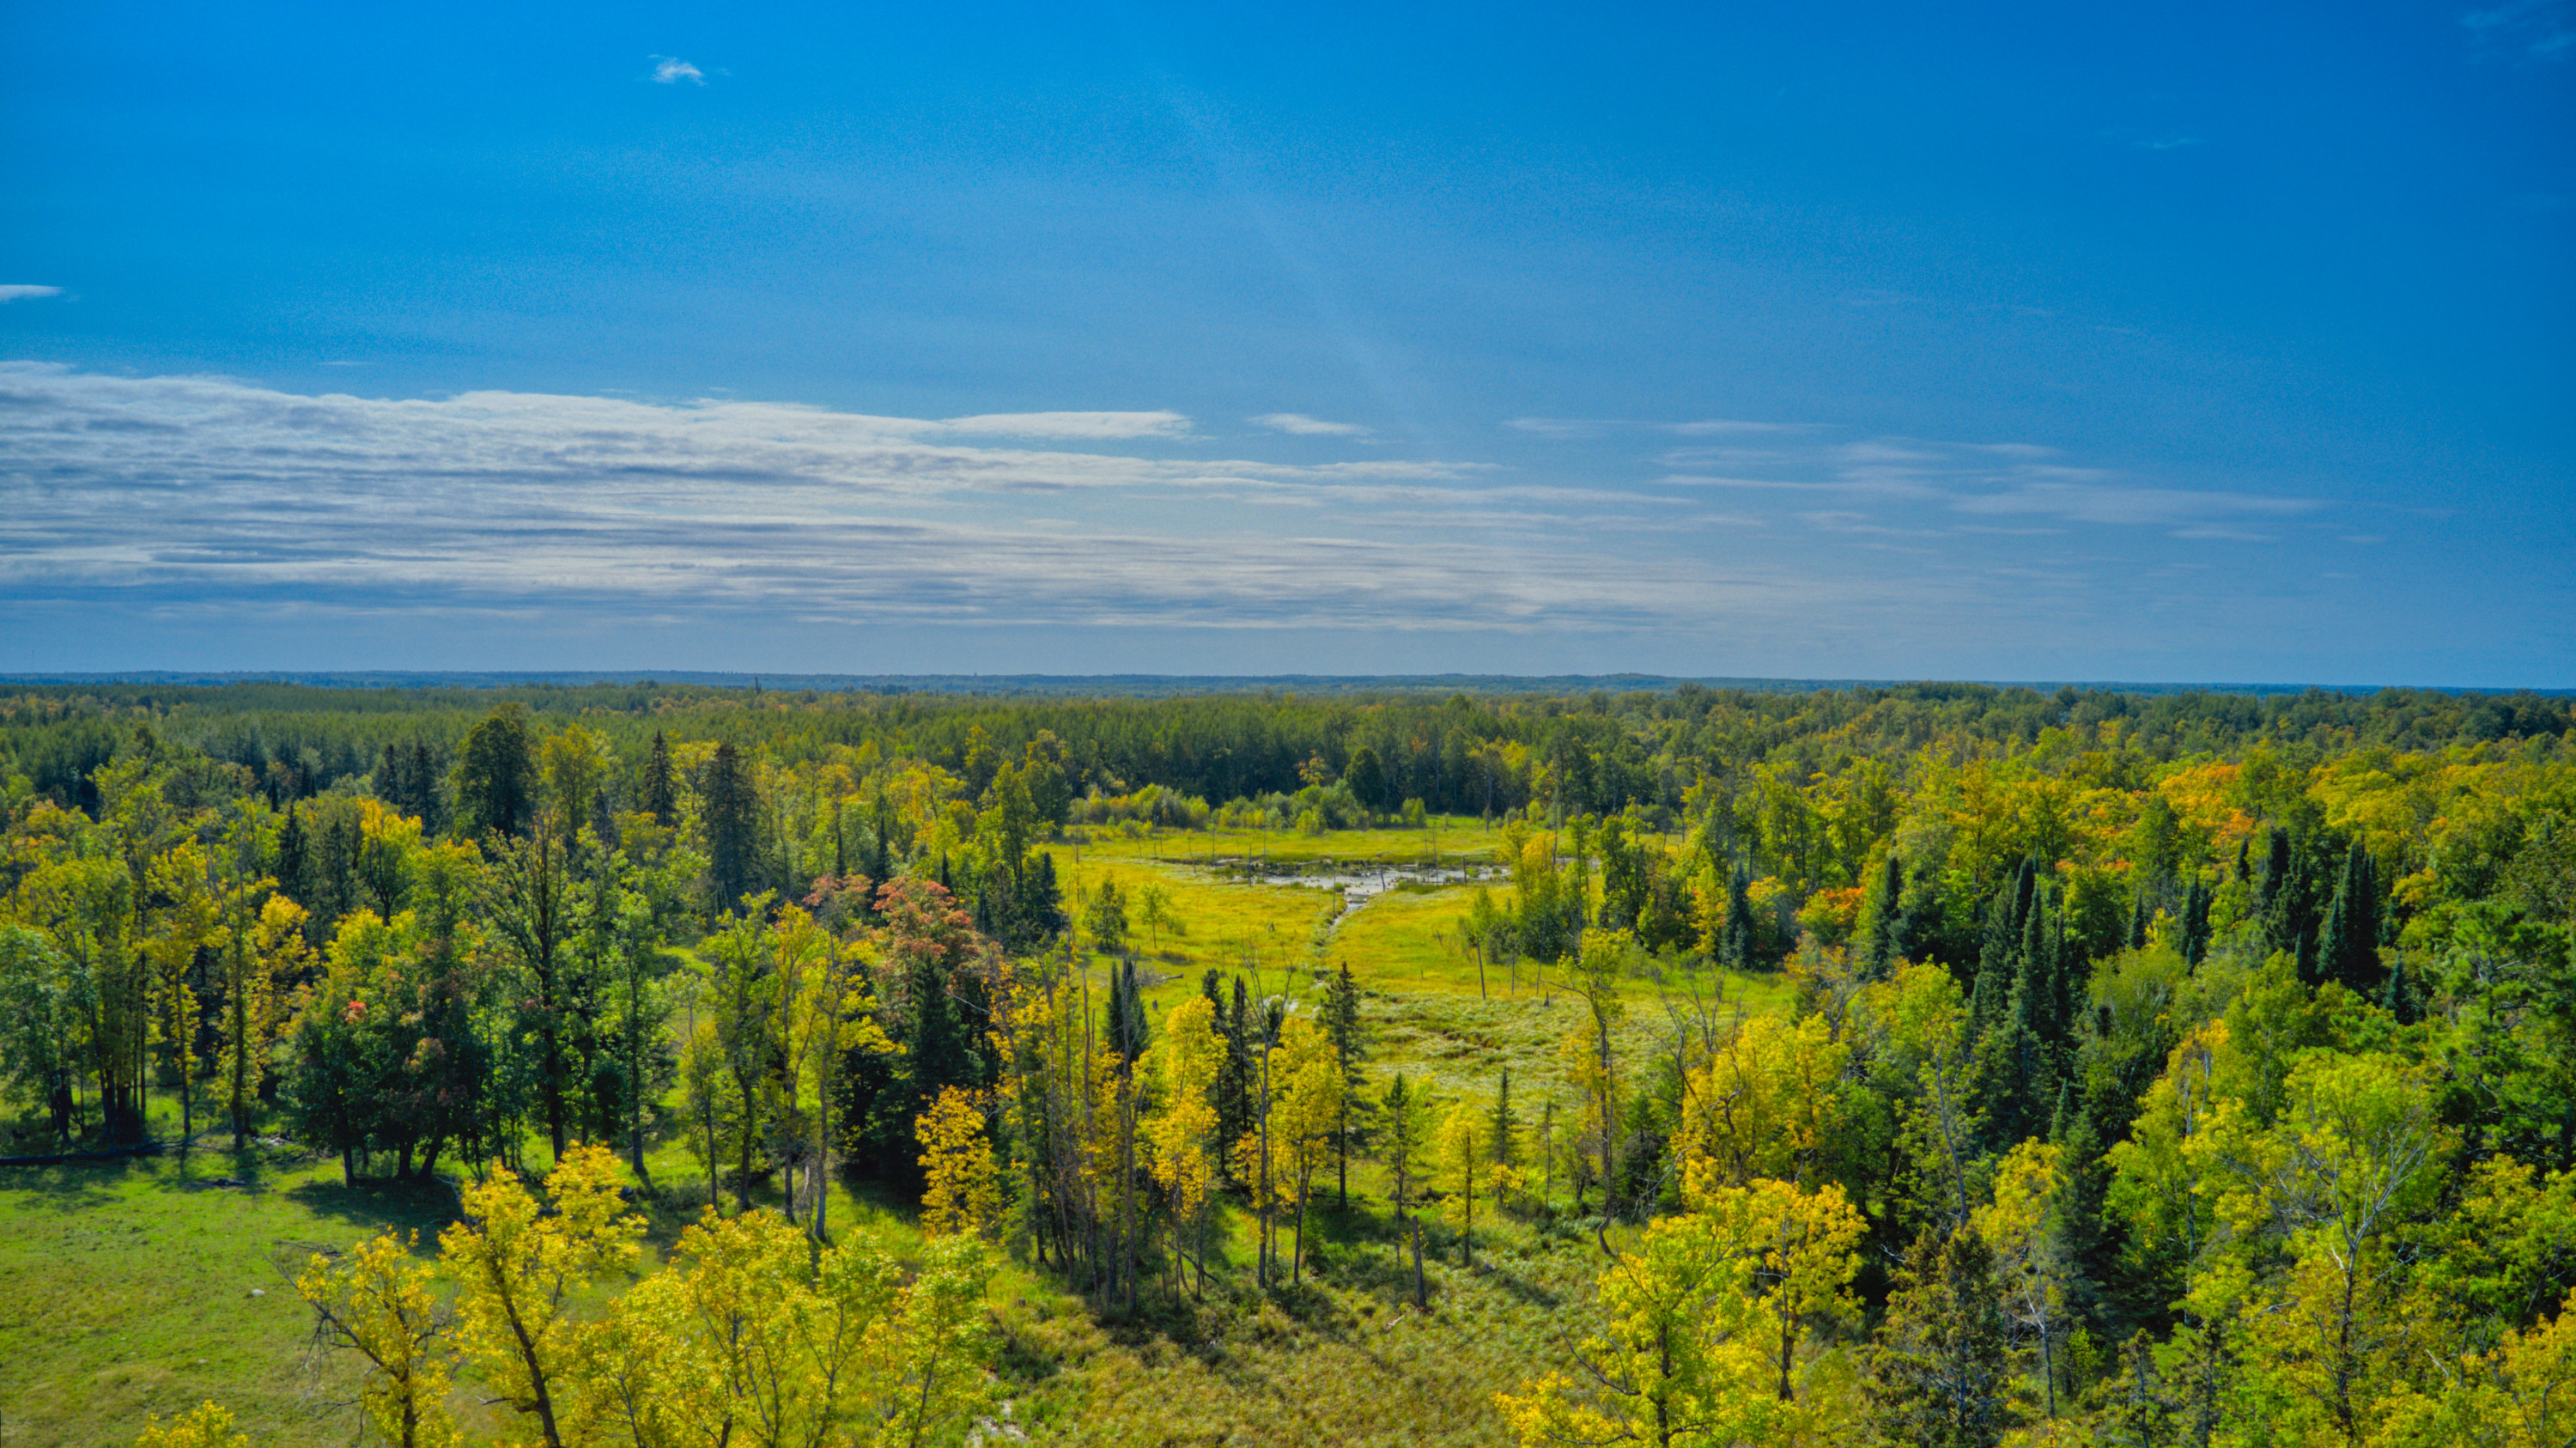 TBD Great Divide Rd NW, Puposky, MN 56667